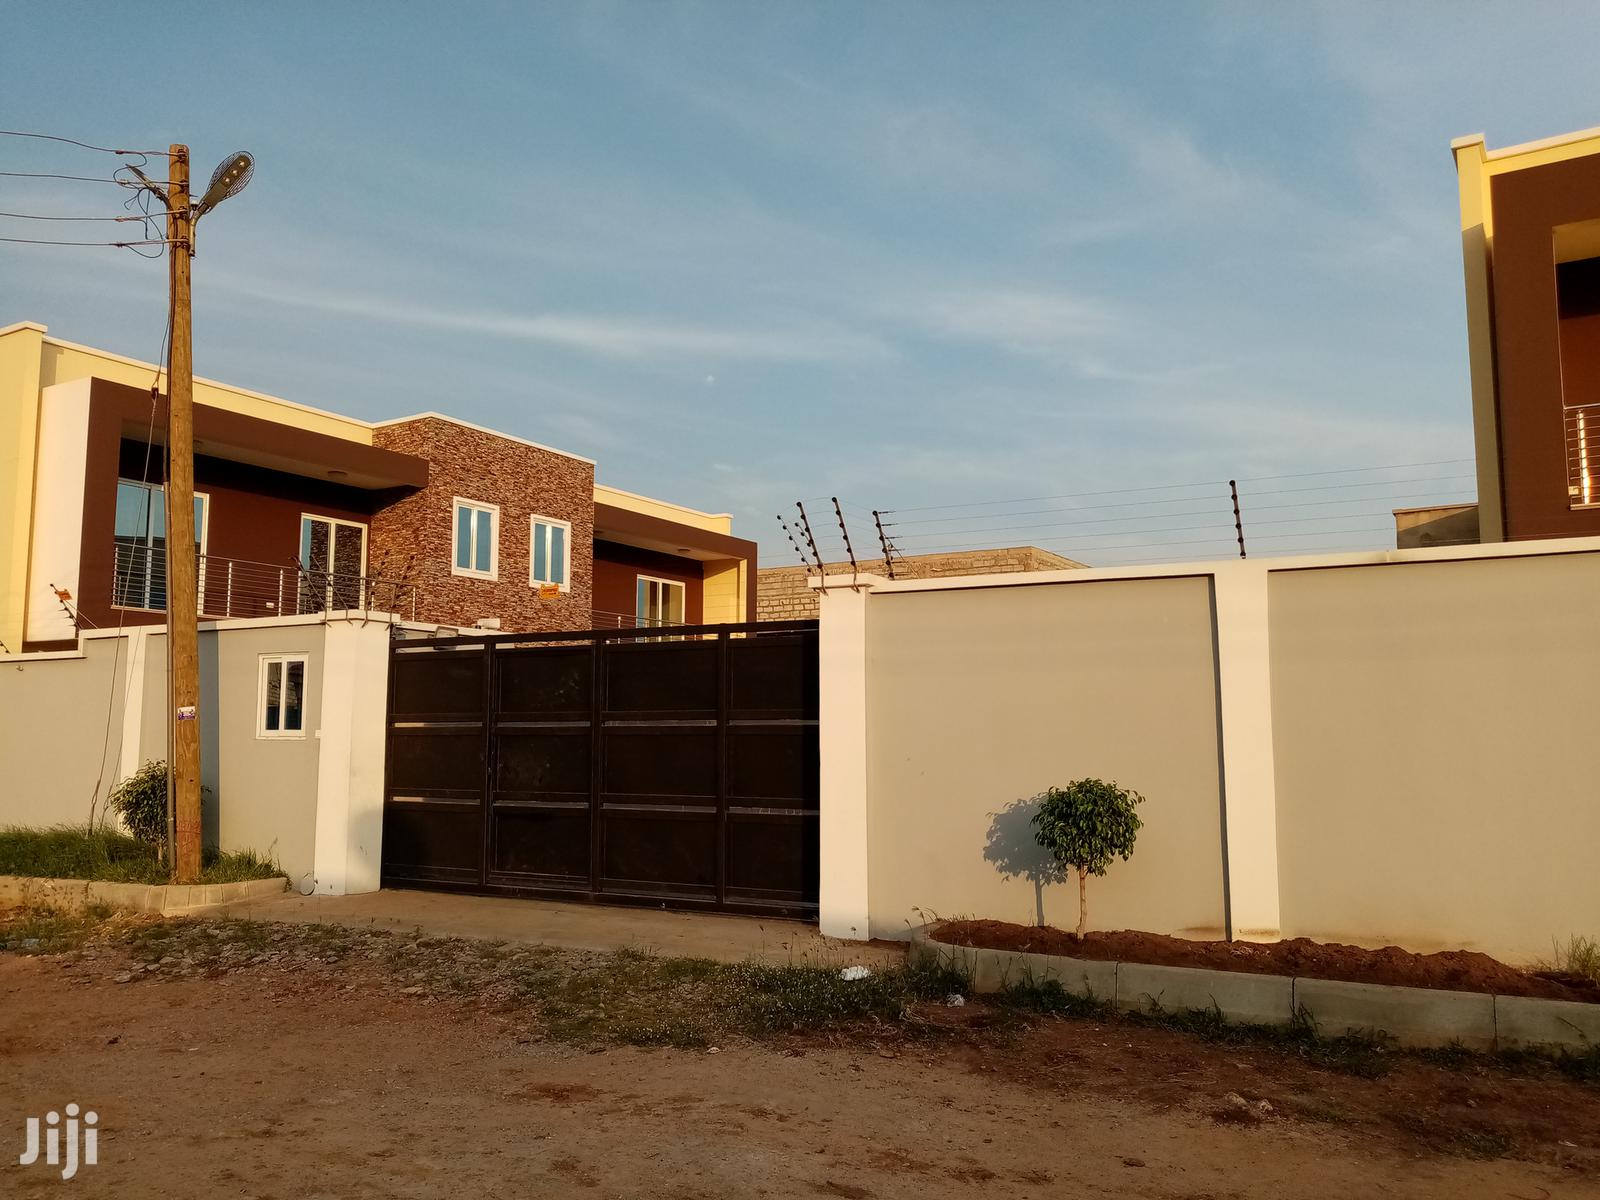 3 Bedroom Semi-Detached House With Boys Quarters for Rent   Houses & Apartments For Rent for sale in Accra Metropolitan, Greater Accra, Ghana